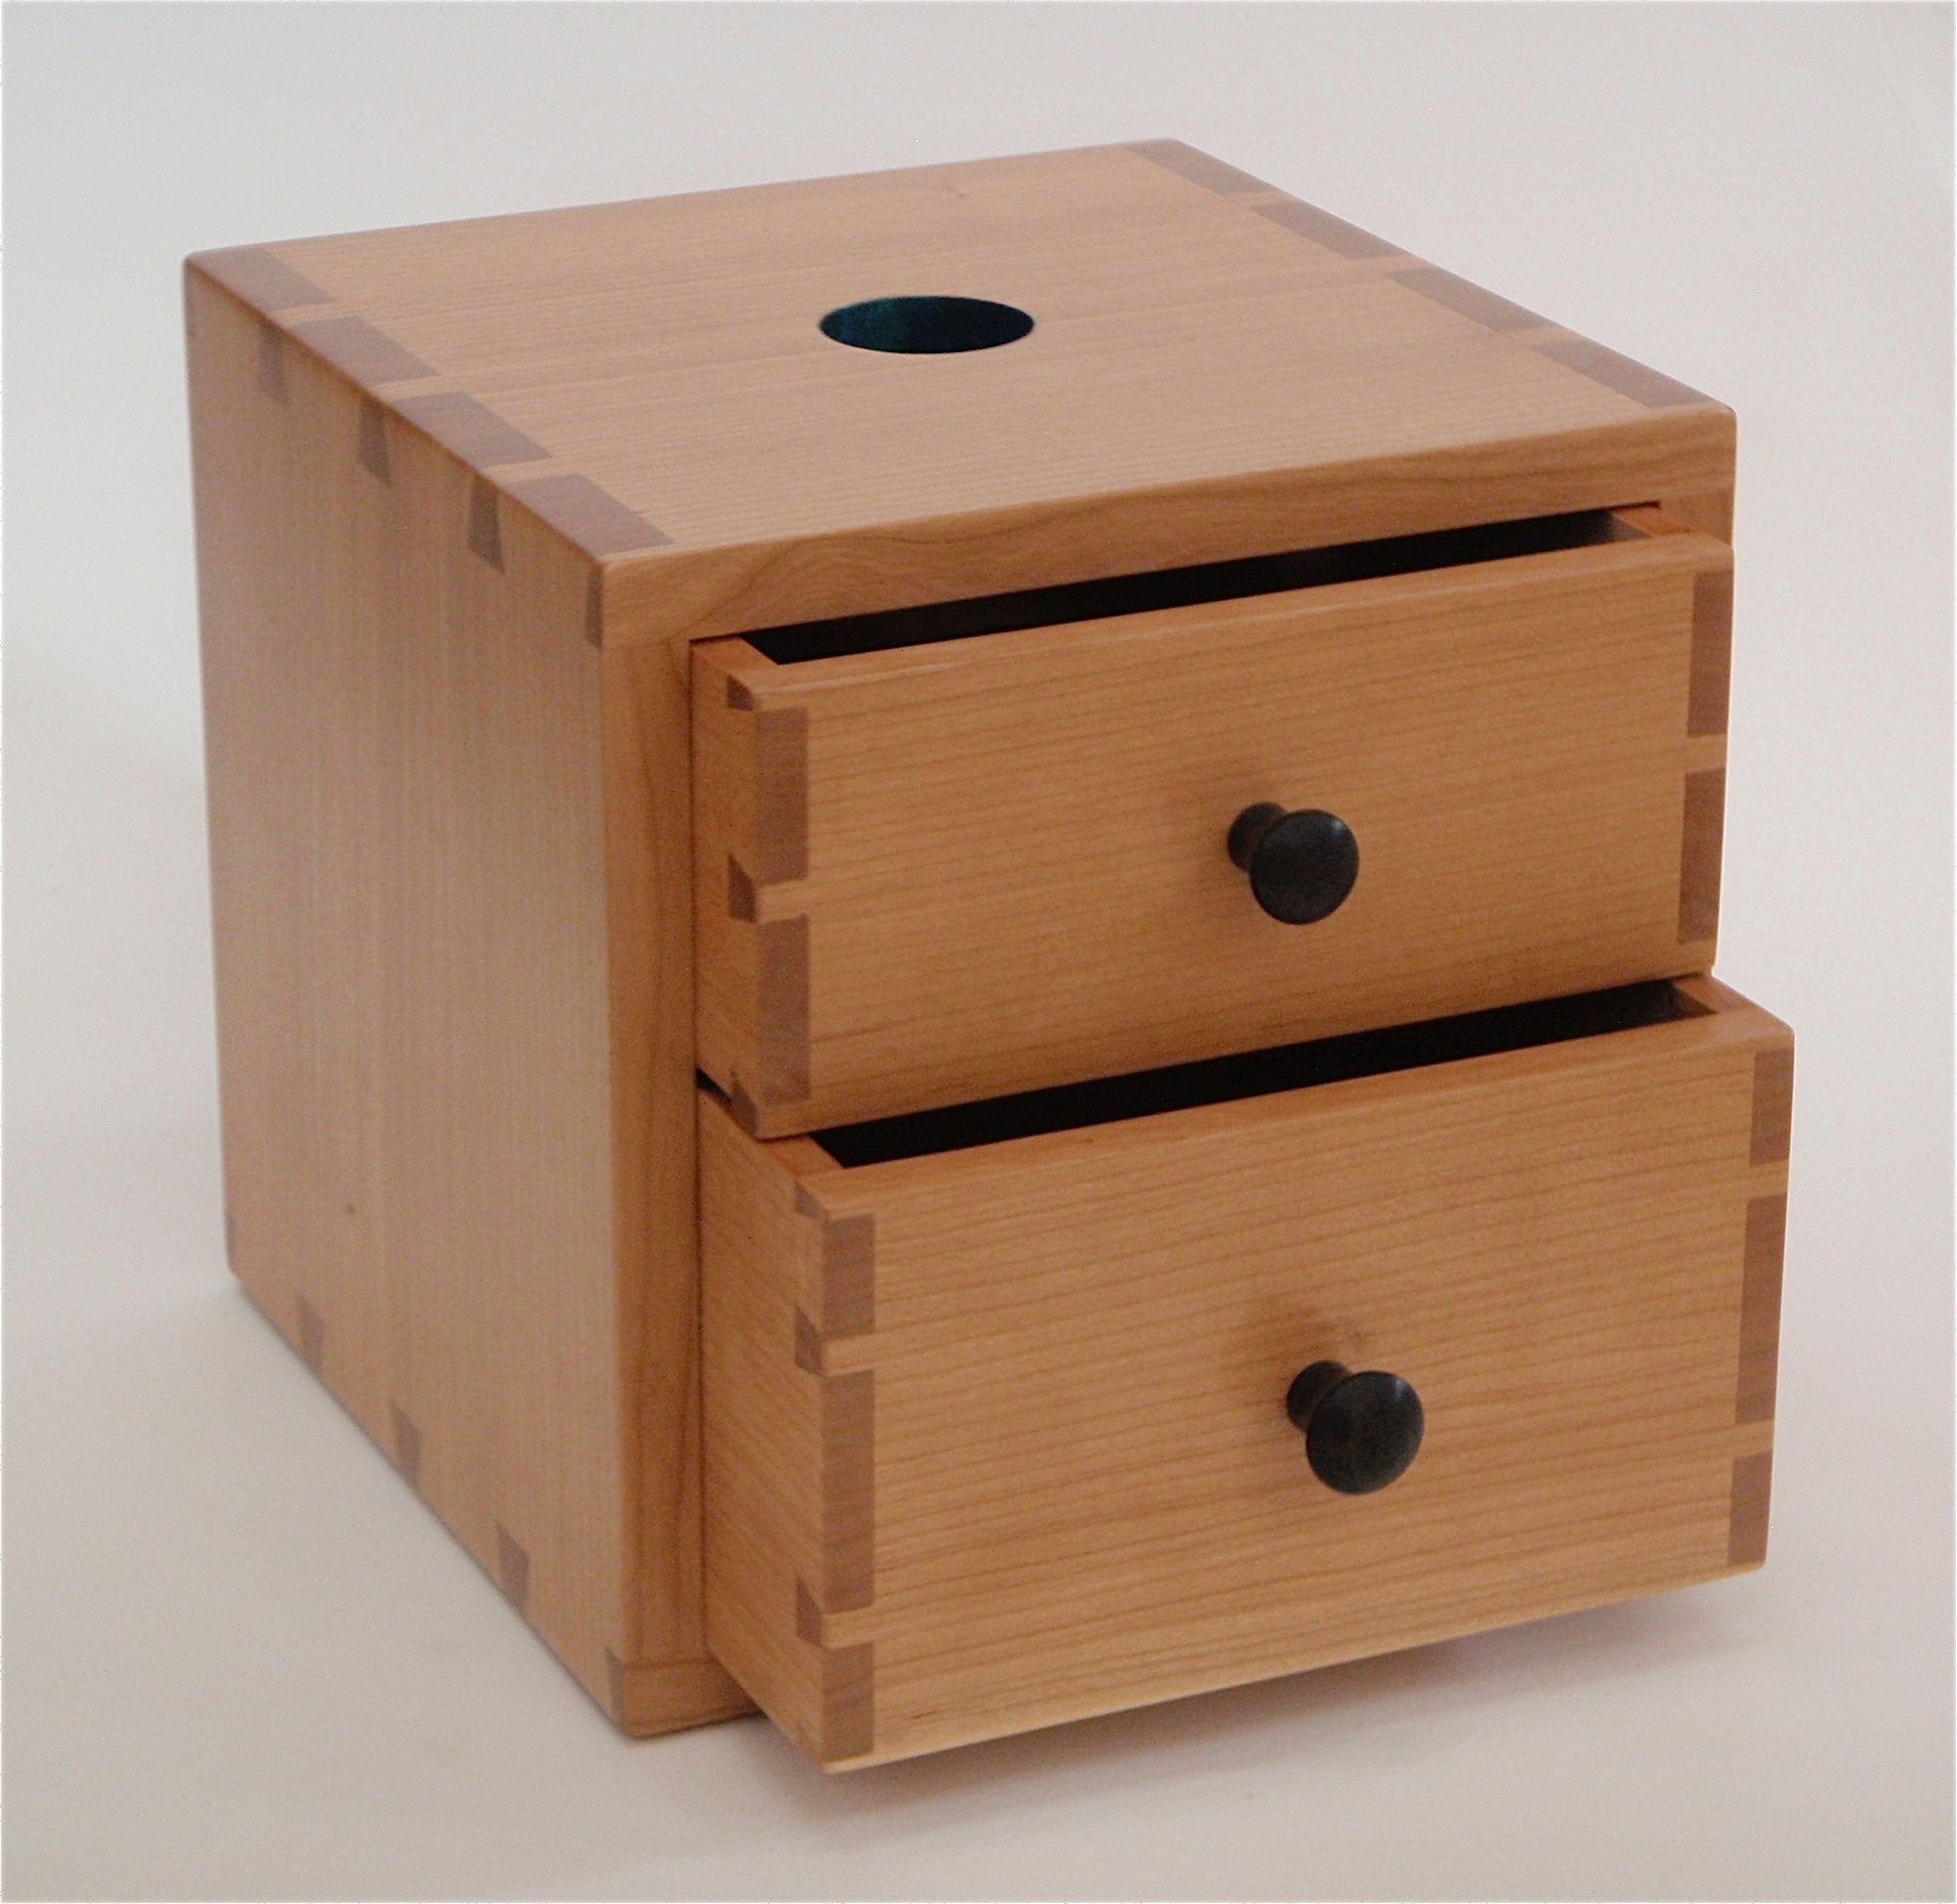 Piggy bank box 03